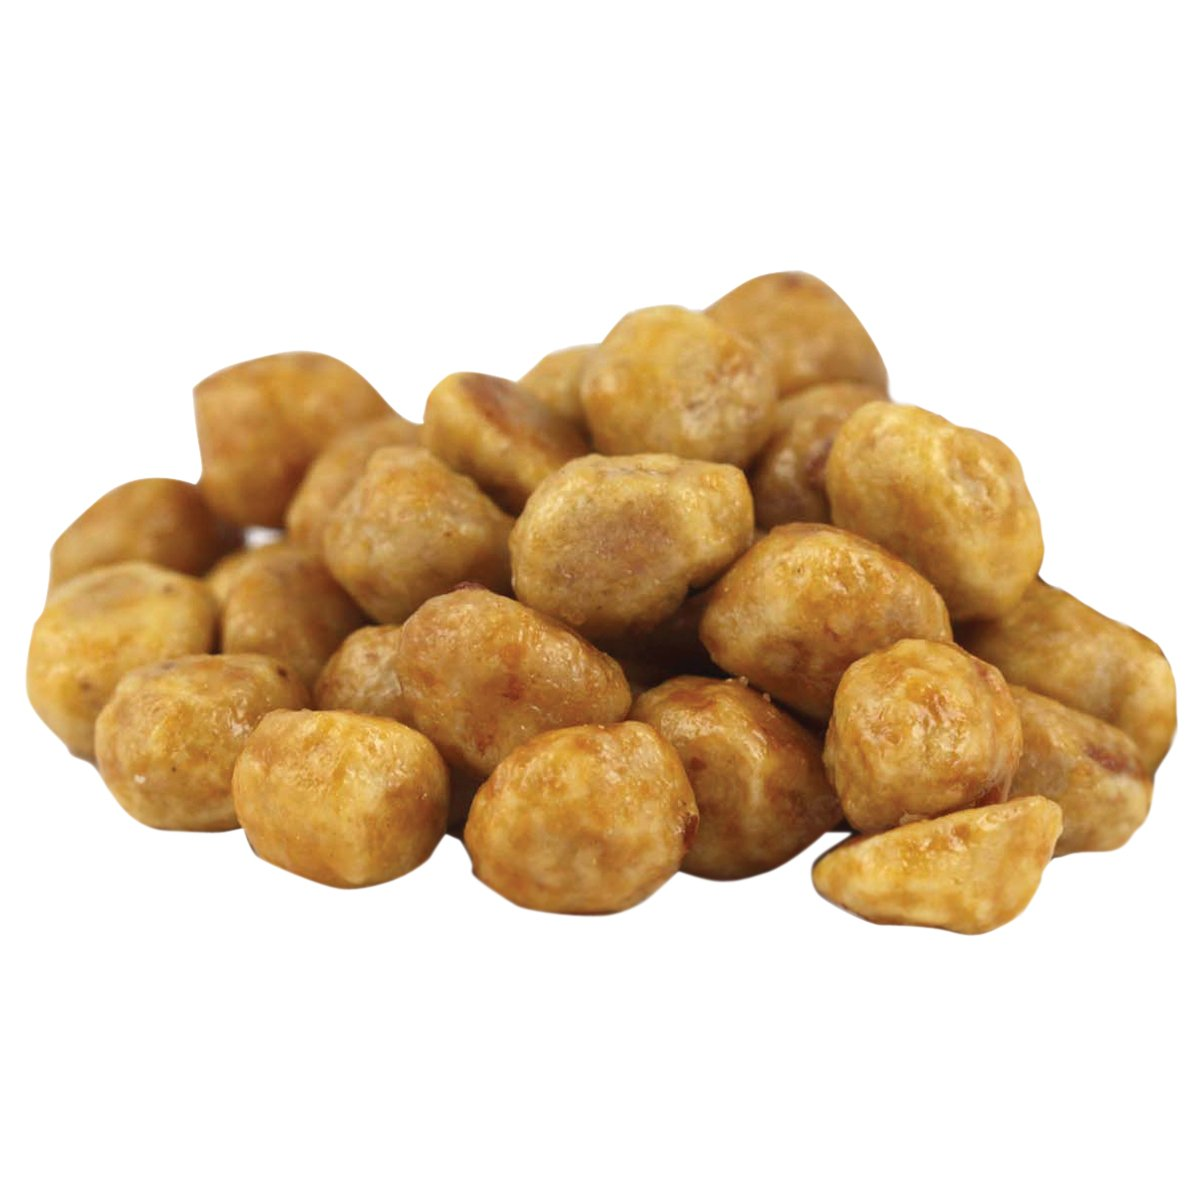 Butter Toffee Peanuts 12 oz - 5206T